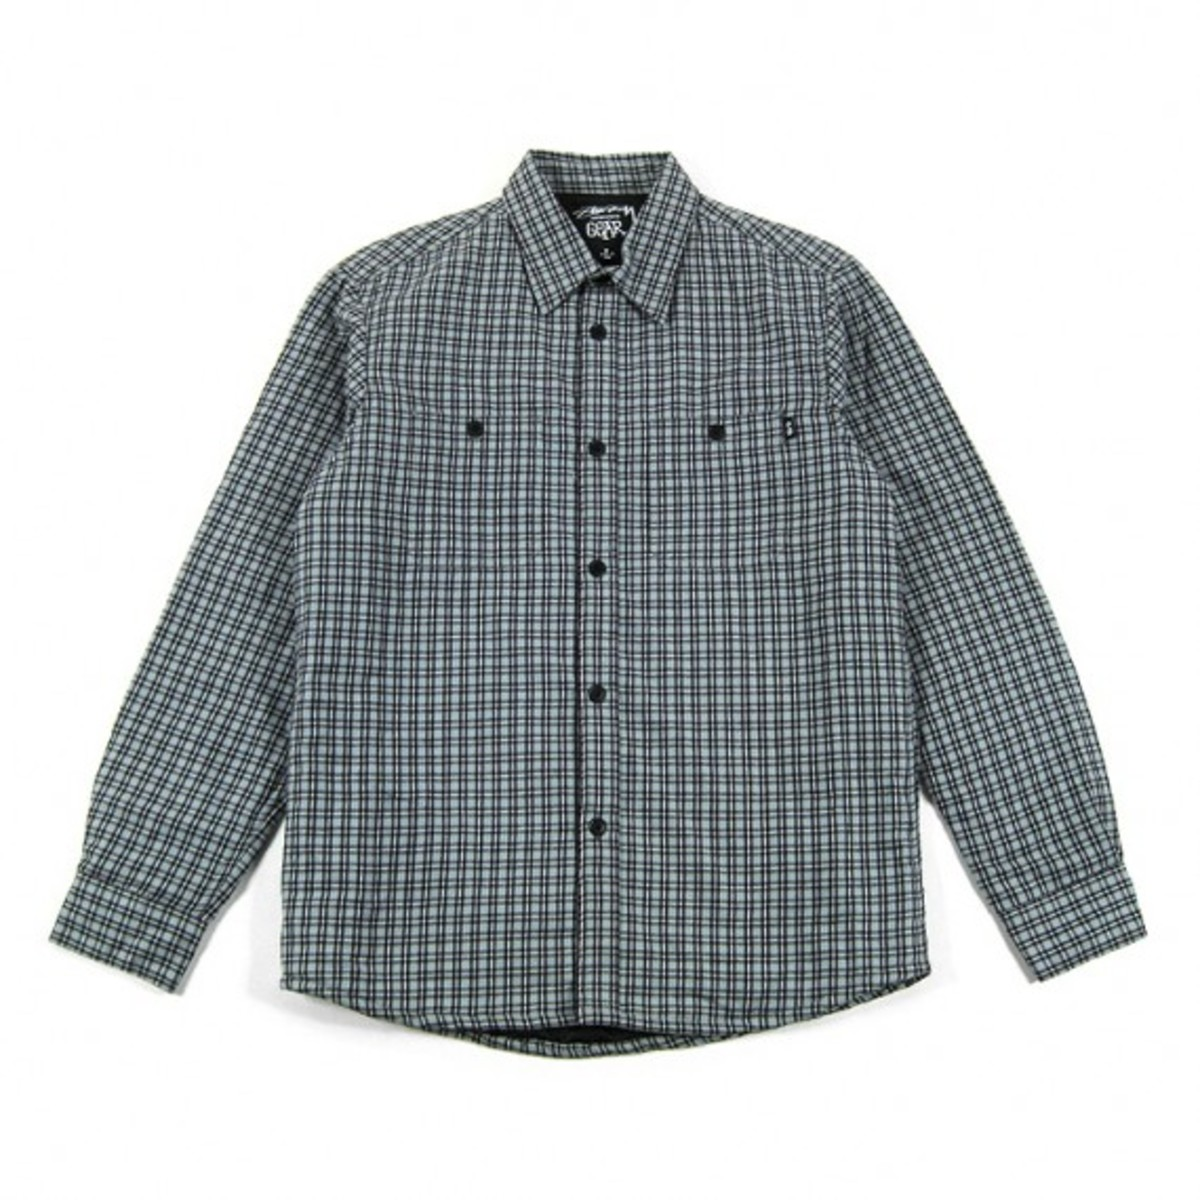 stussy-fall-2009-flannel-shirts-9